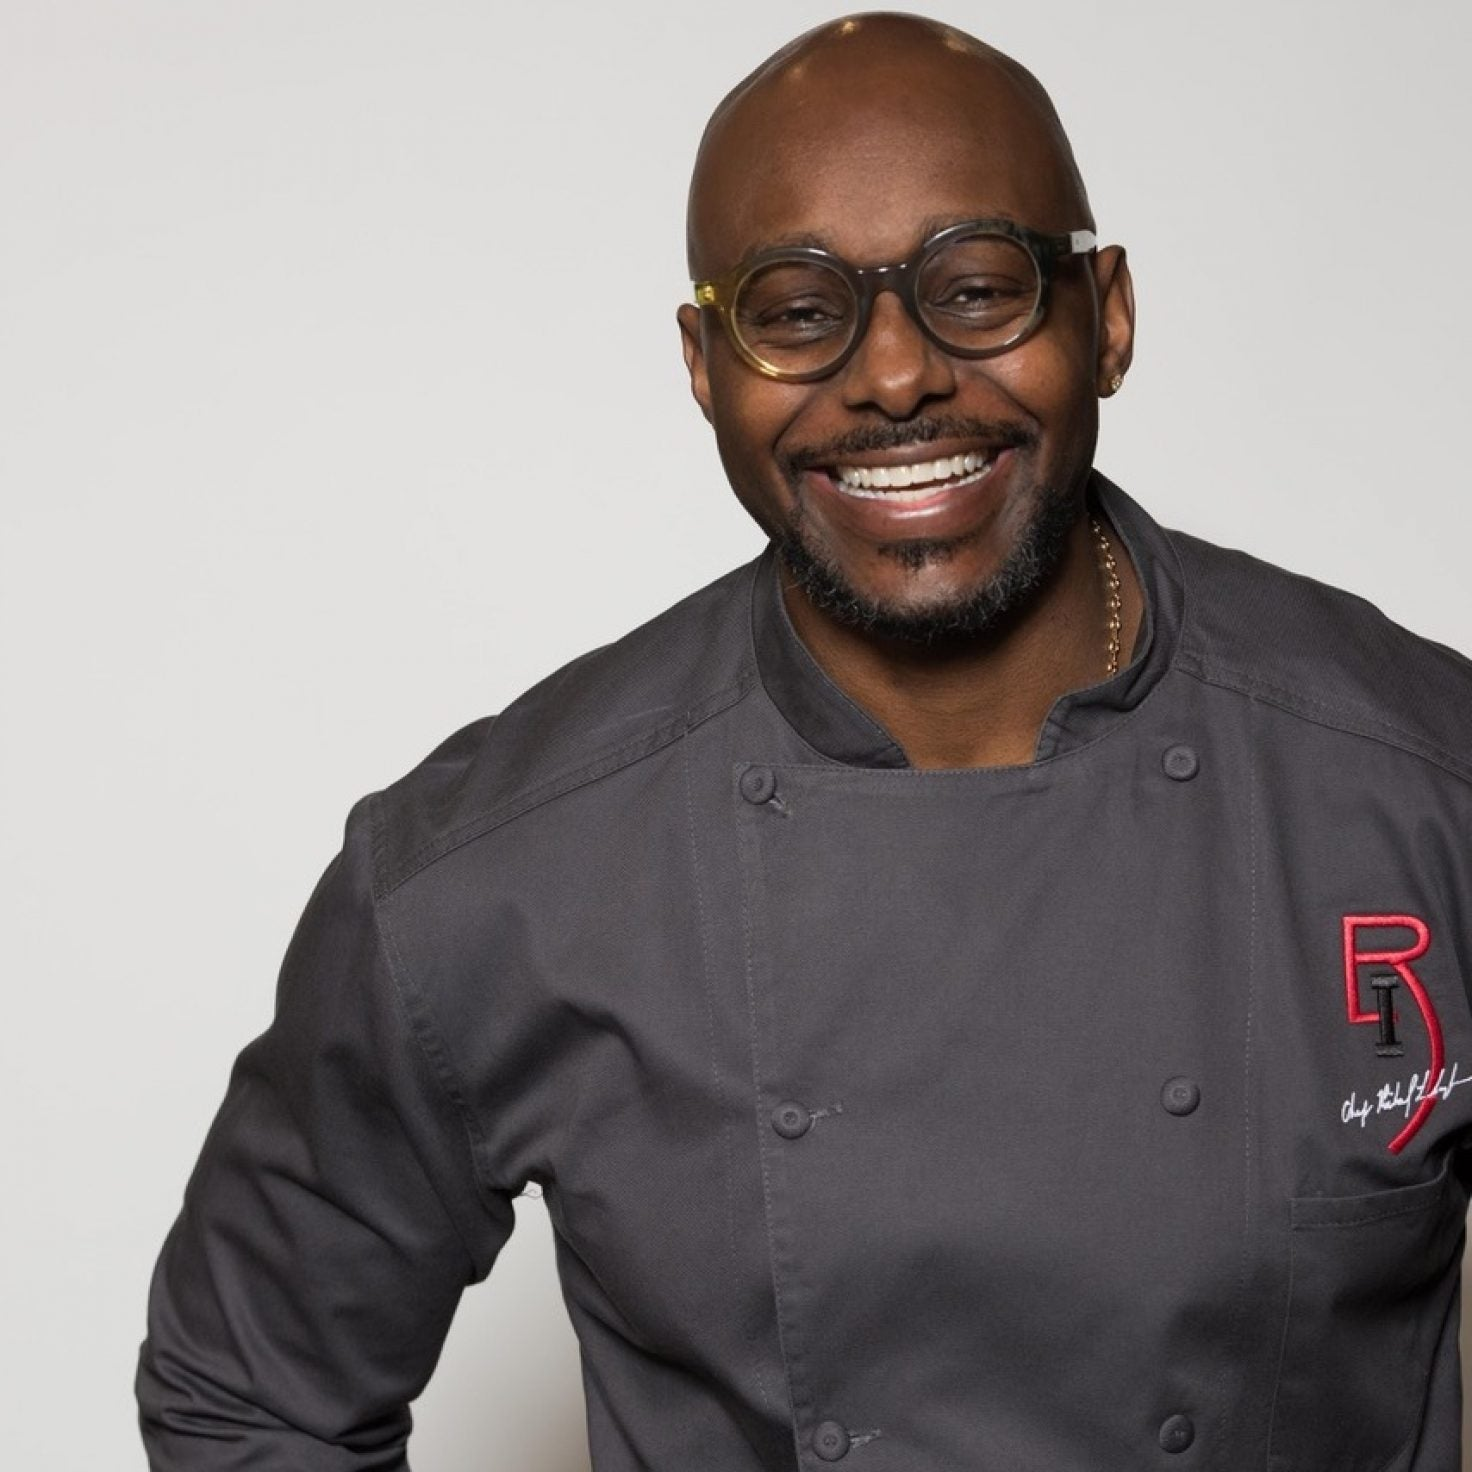 Chef Richard Dishes On How A Leap Of Faith Led Him To Cooking For One Of The NBA's Biggest Stars